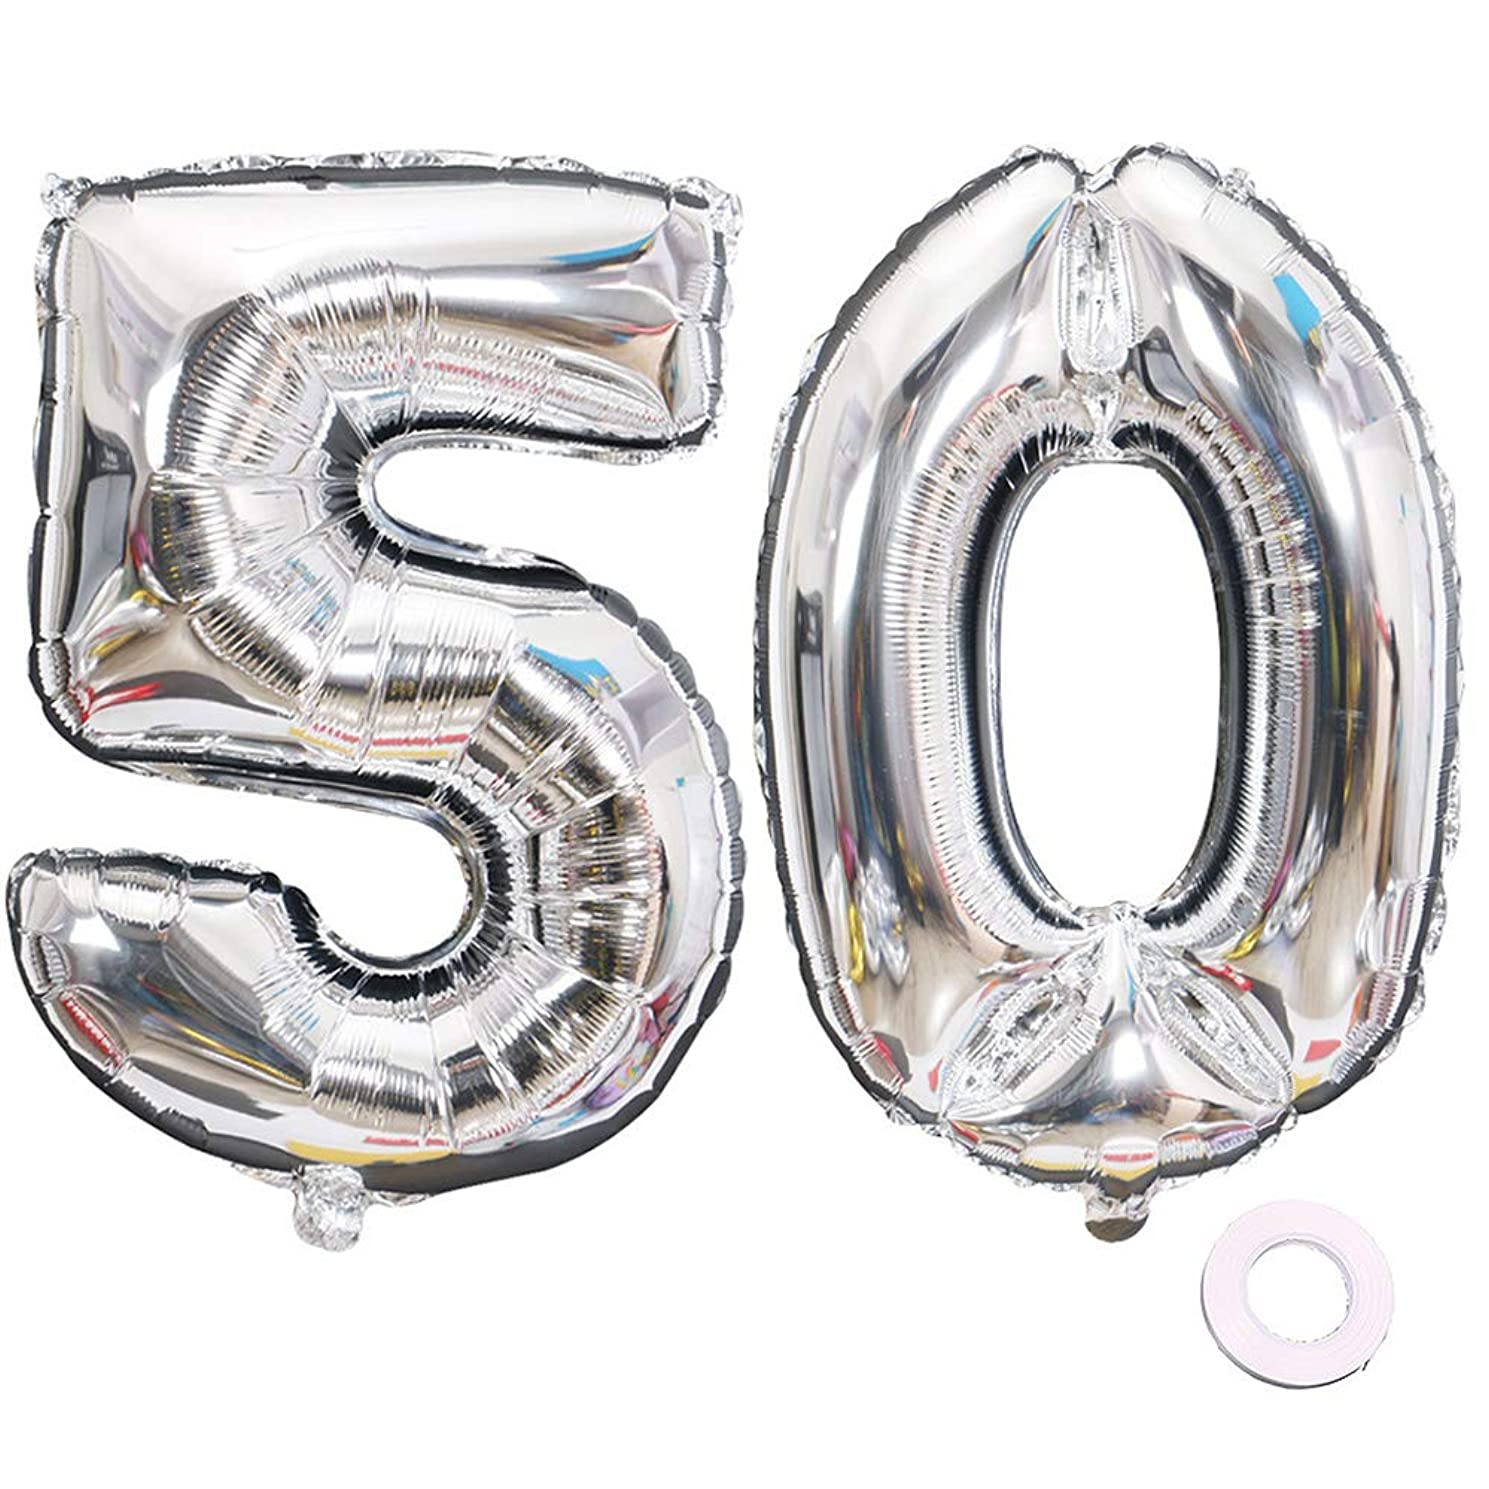 Juland Silver Number 50 Balloons Large Foil Mylar Balloons 40 Inch Giant Jumbo Number Balloons for Birthday Party Decorations